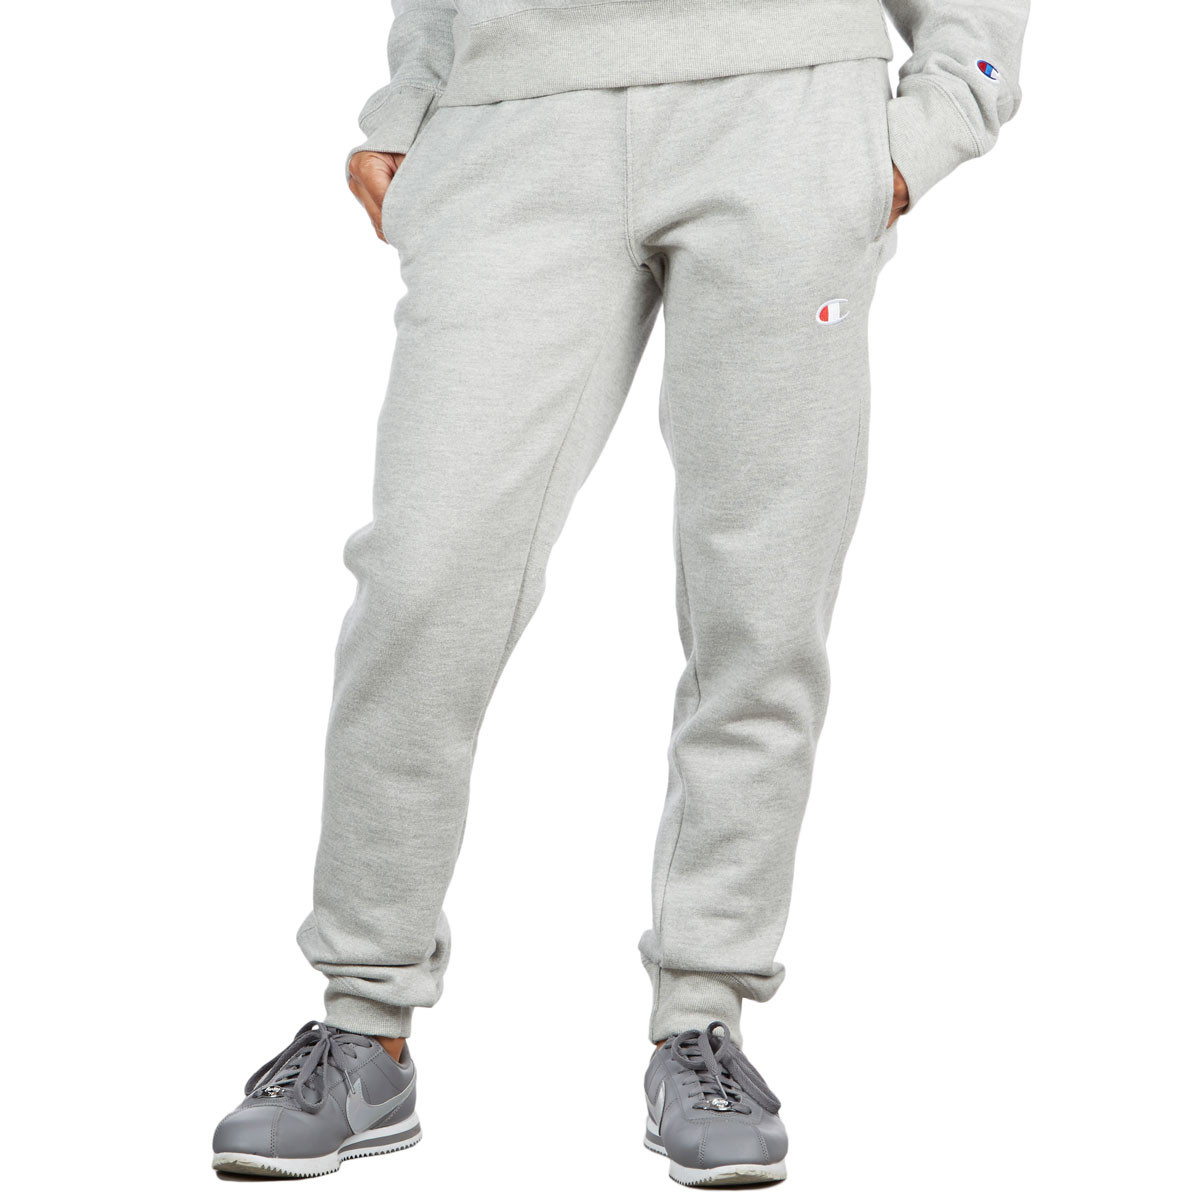 a84aa6c64b57 Champion Womens Reverse Weave Jogger Pants - Oxford Gray